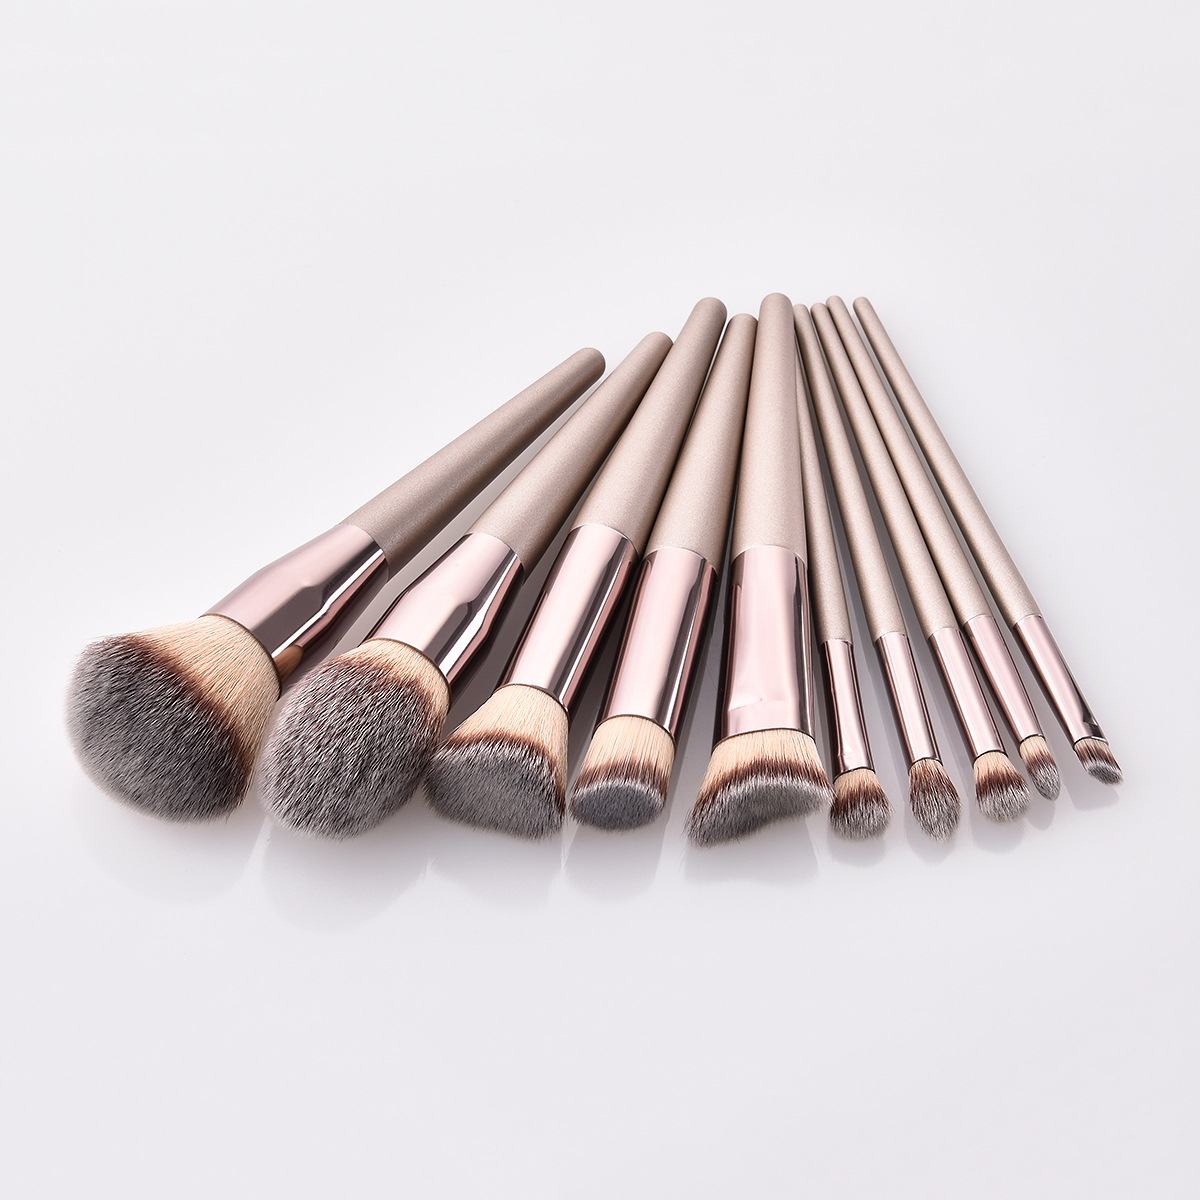 Image 5 - Luxury Champagne Makeup Brushes Set For Foundation Powder Blush Eyeshadow Concealer Lip Eye Cosmetics Beauty Tools Make Up Brush-in Eye Shadow Applicator from Beauty & Health